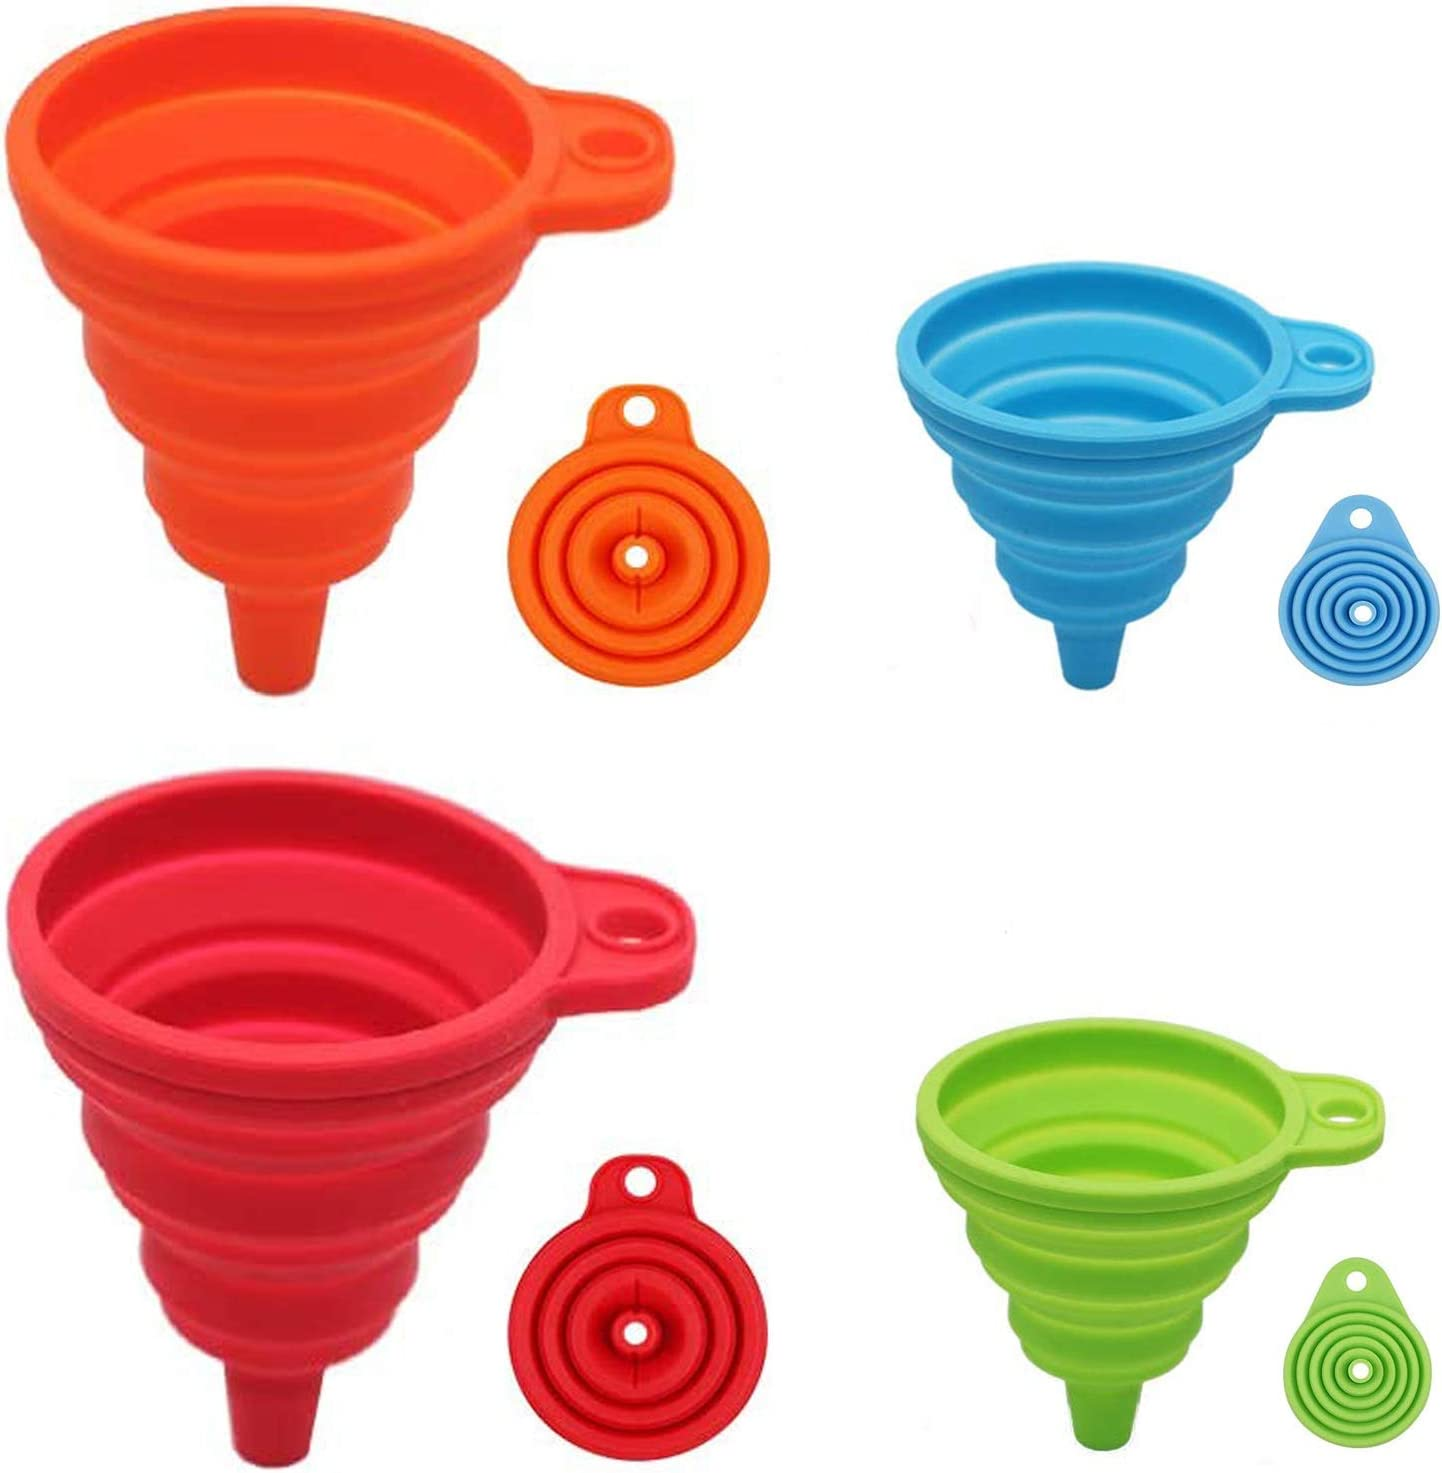 Silicone Collapsible Funnel,Large and Small,4 Pcs Flexible Silicone Foldable Kitchen Funnel Set for Filling Food,Water Bottle Liquid Transfer,Portable Food Grade Funnels for Filling Bottles (4 Color)